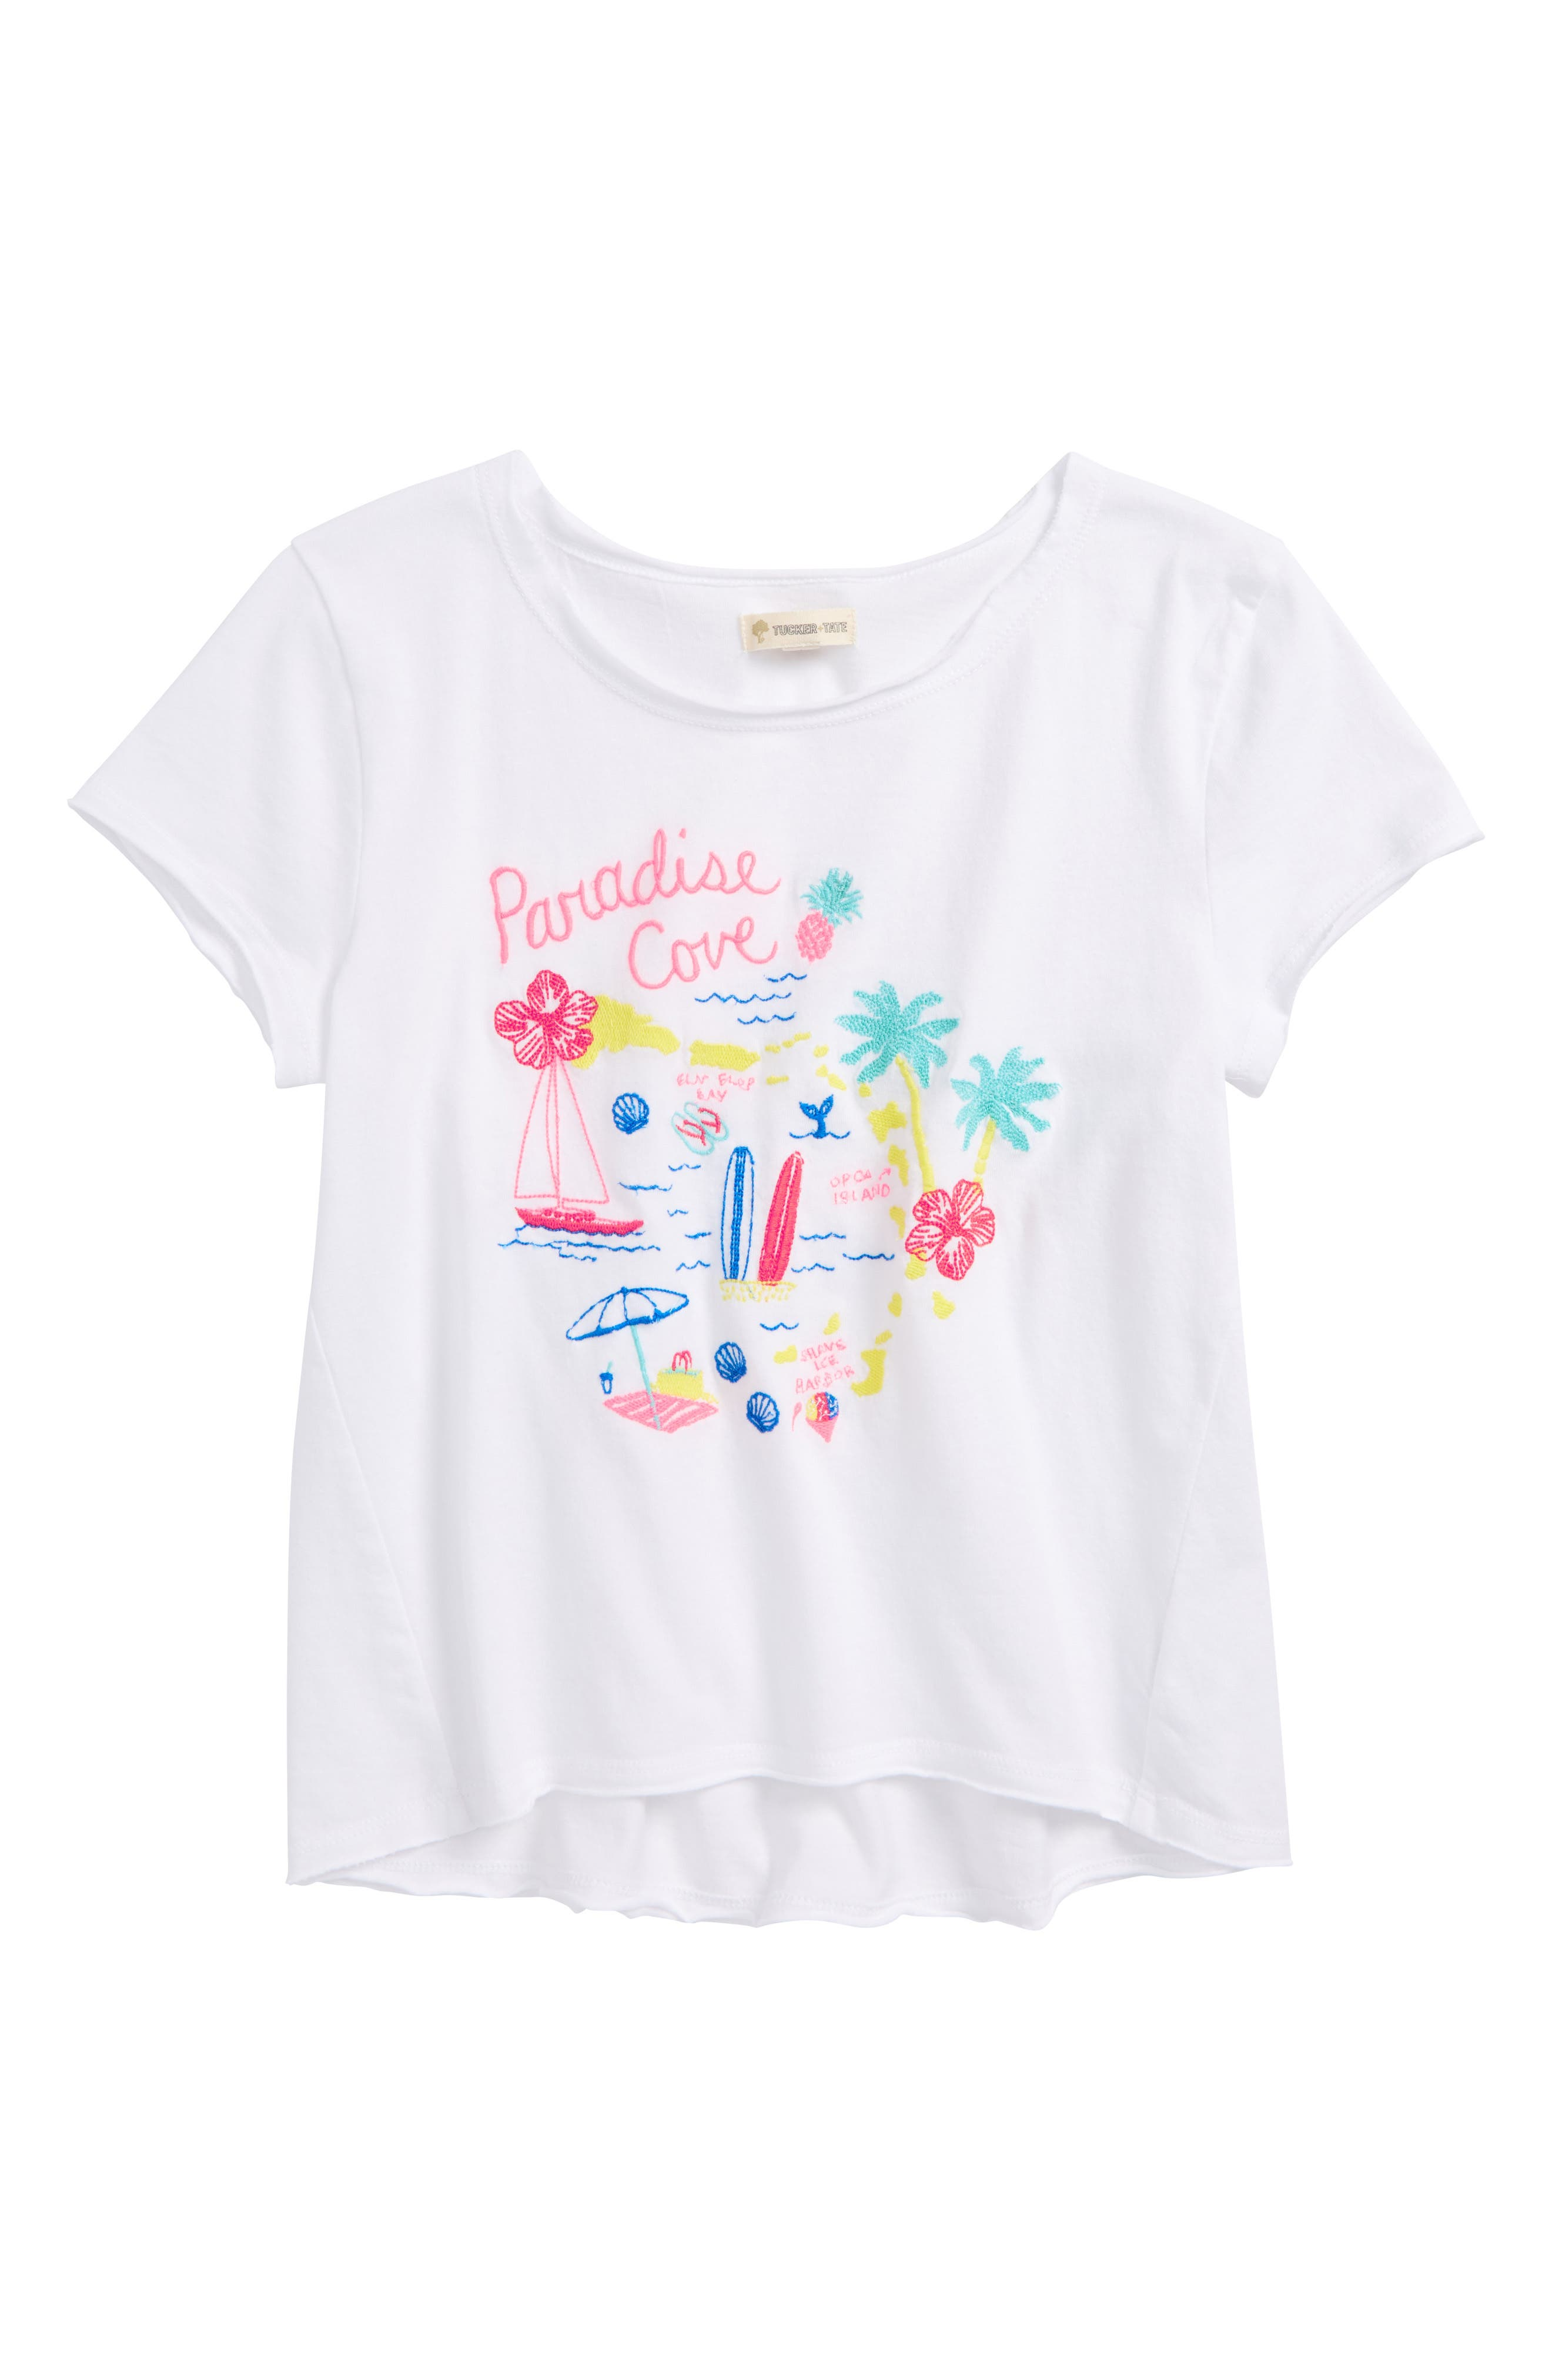 Tucker+Tate Embroidered Tee,                         Main,                         color, White Destination